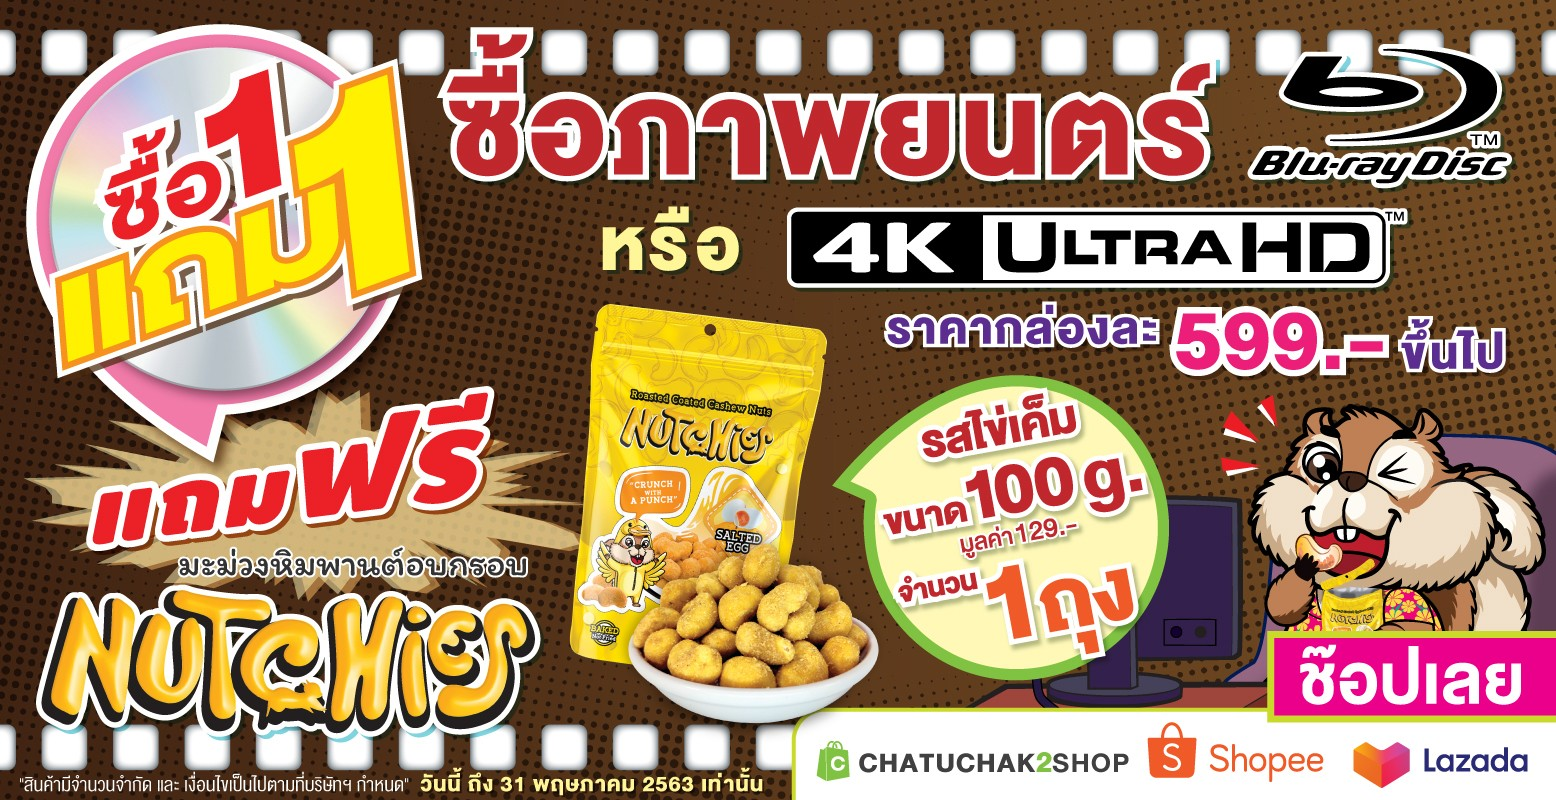 Buy 1 BD or 4K Free 1 NUTCHIES